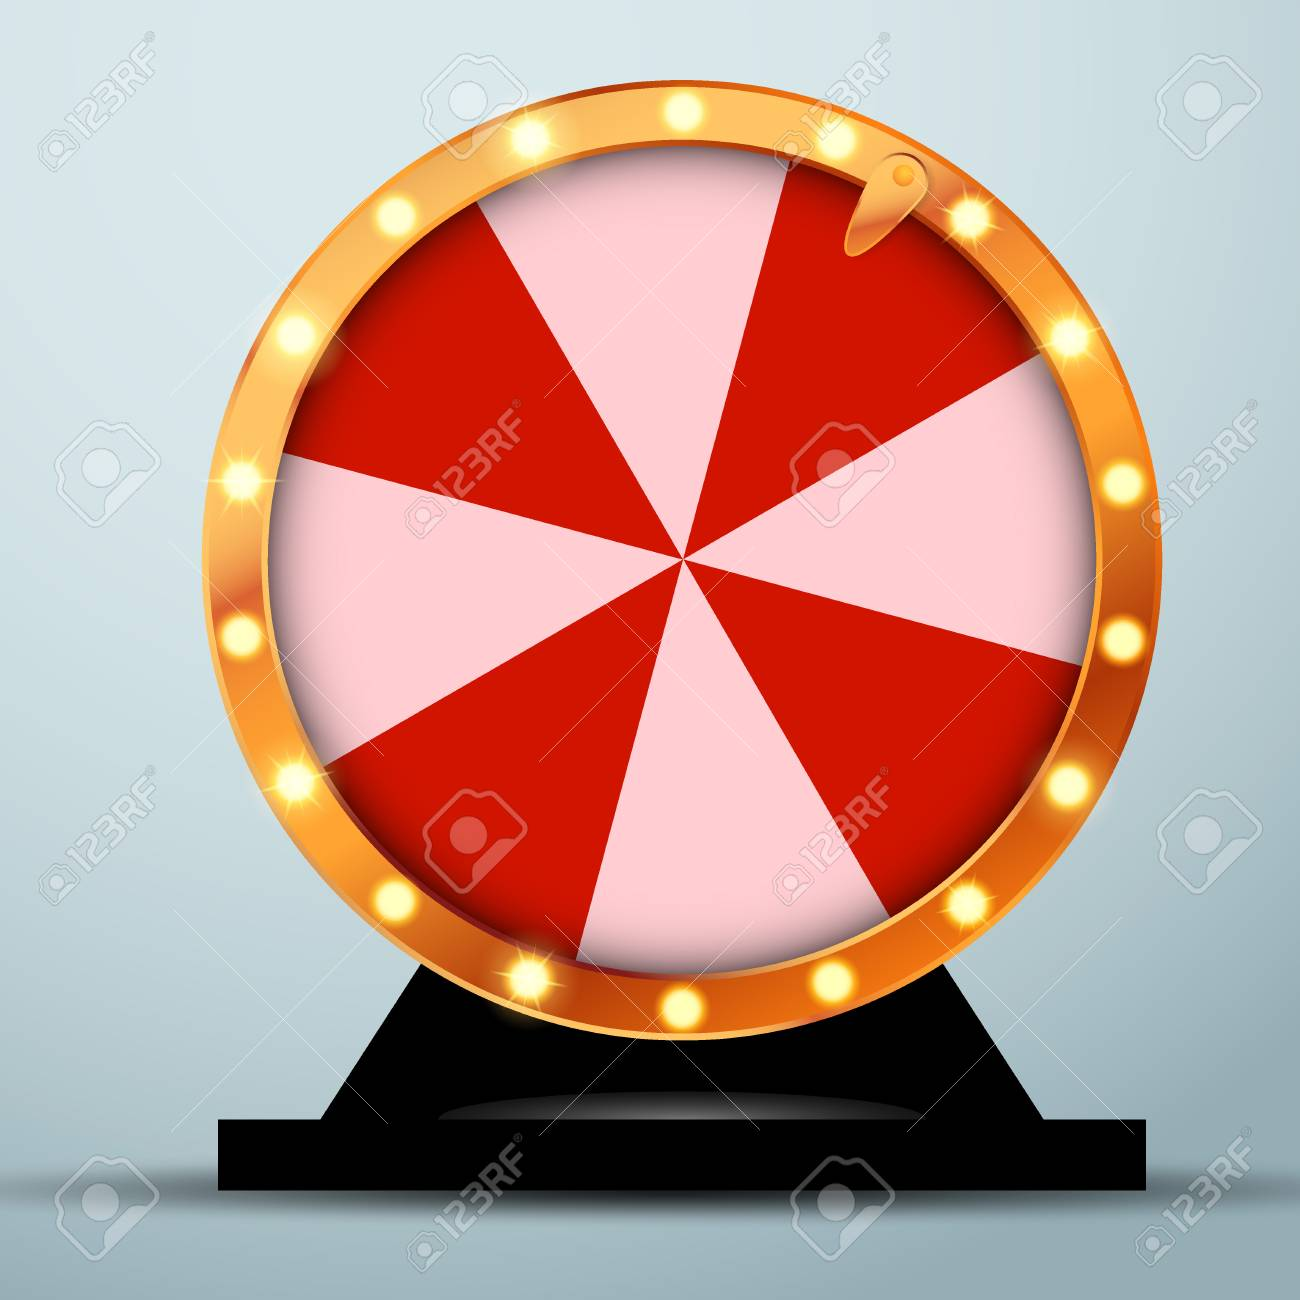 Lottery online casino fortune wheel in golden circle with red and white stripes. Realistic spinning bright roulette. Vector illustration - 87723047